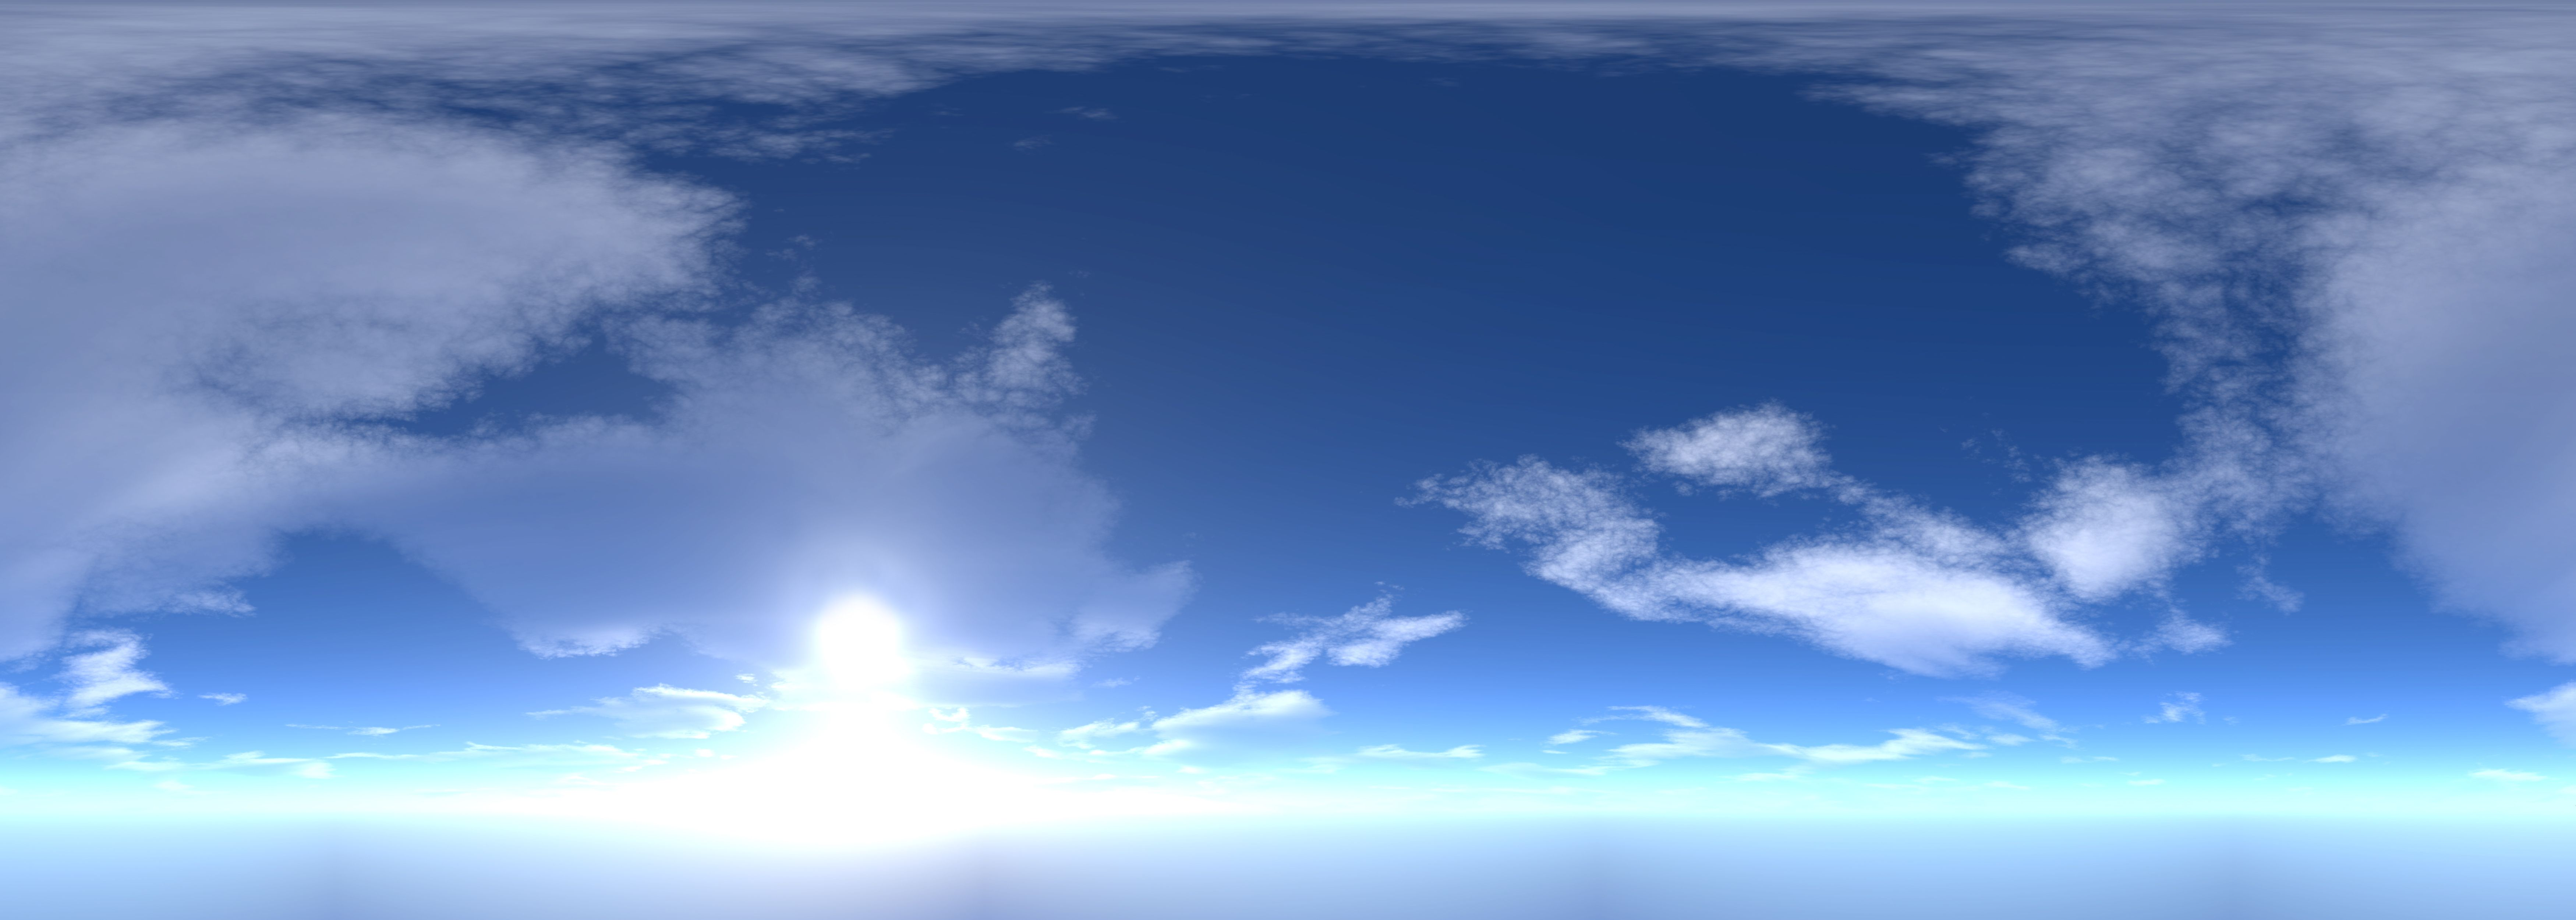 http://blenderartists.org/forum/showthread.php?24038-Free-high-res-skymaps-(Massive-07-update!)